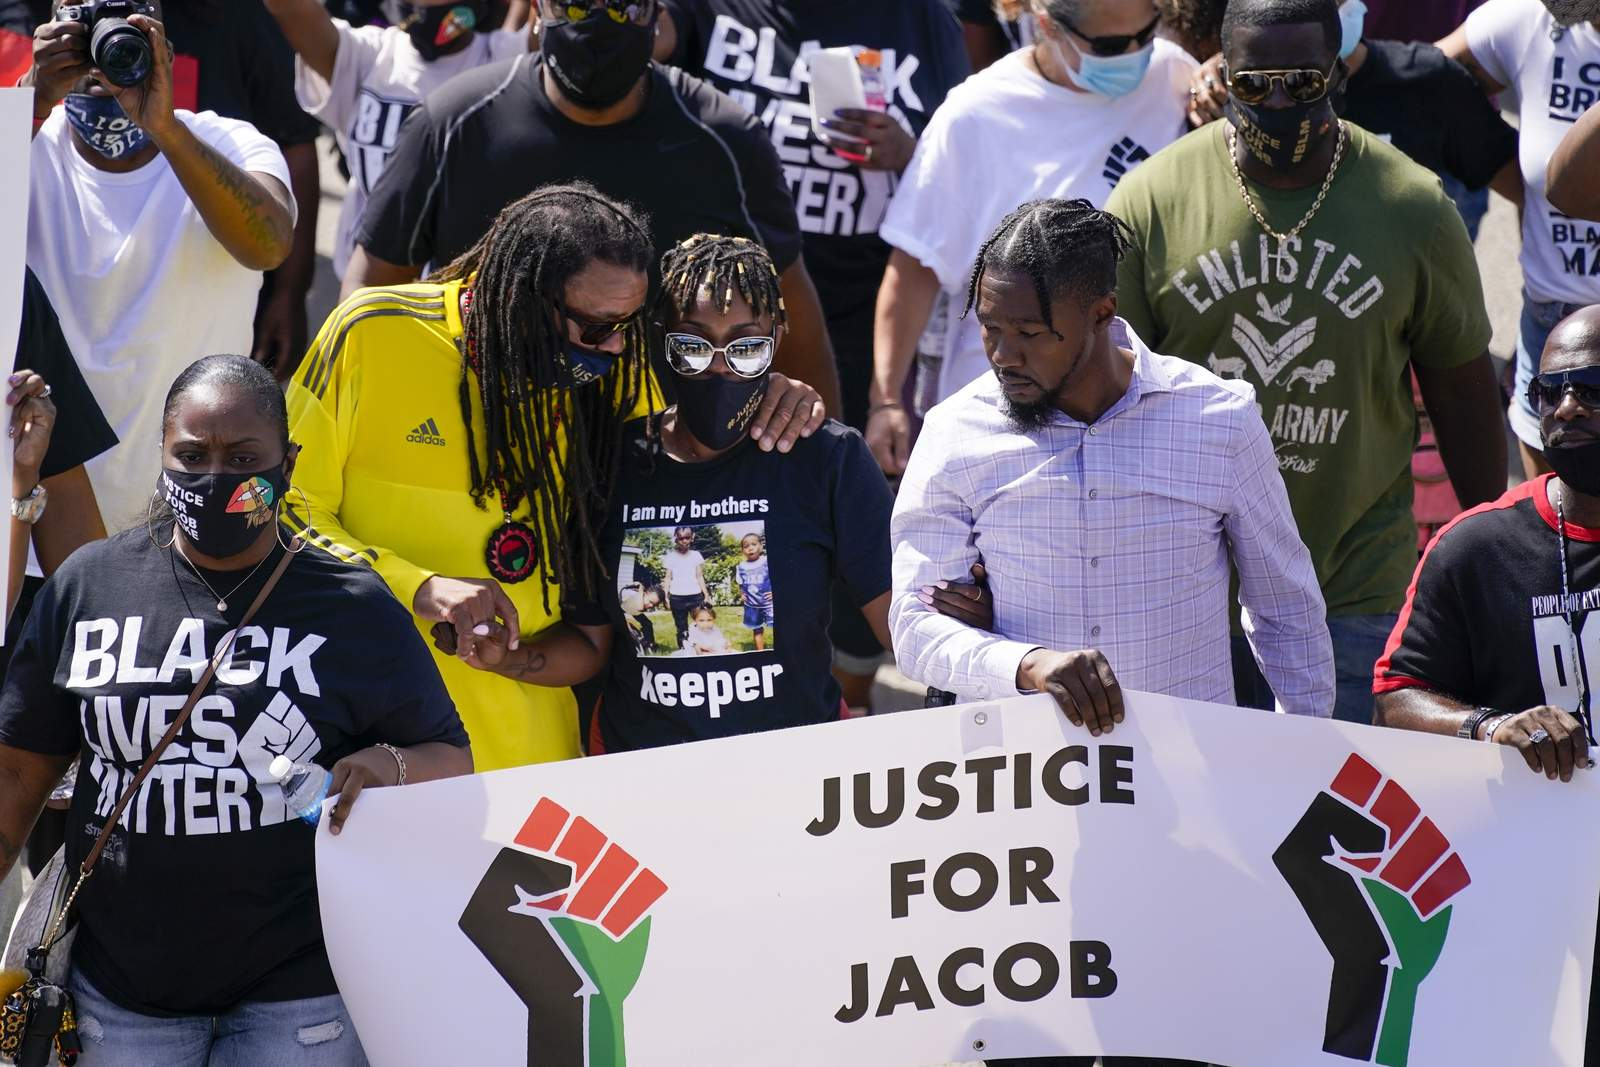 Absent details, police shooting narratives seek to distract